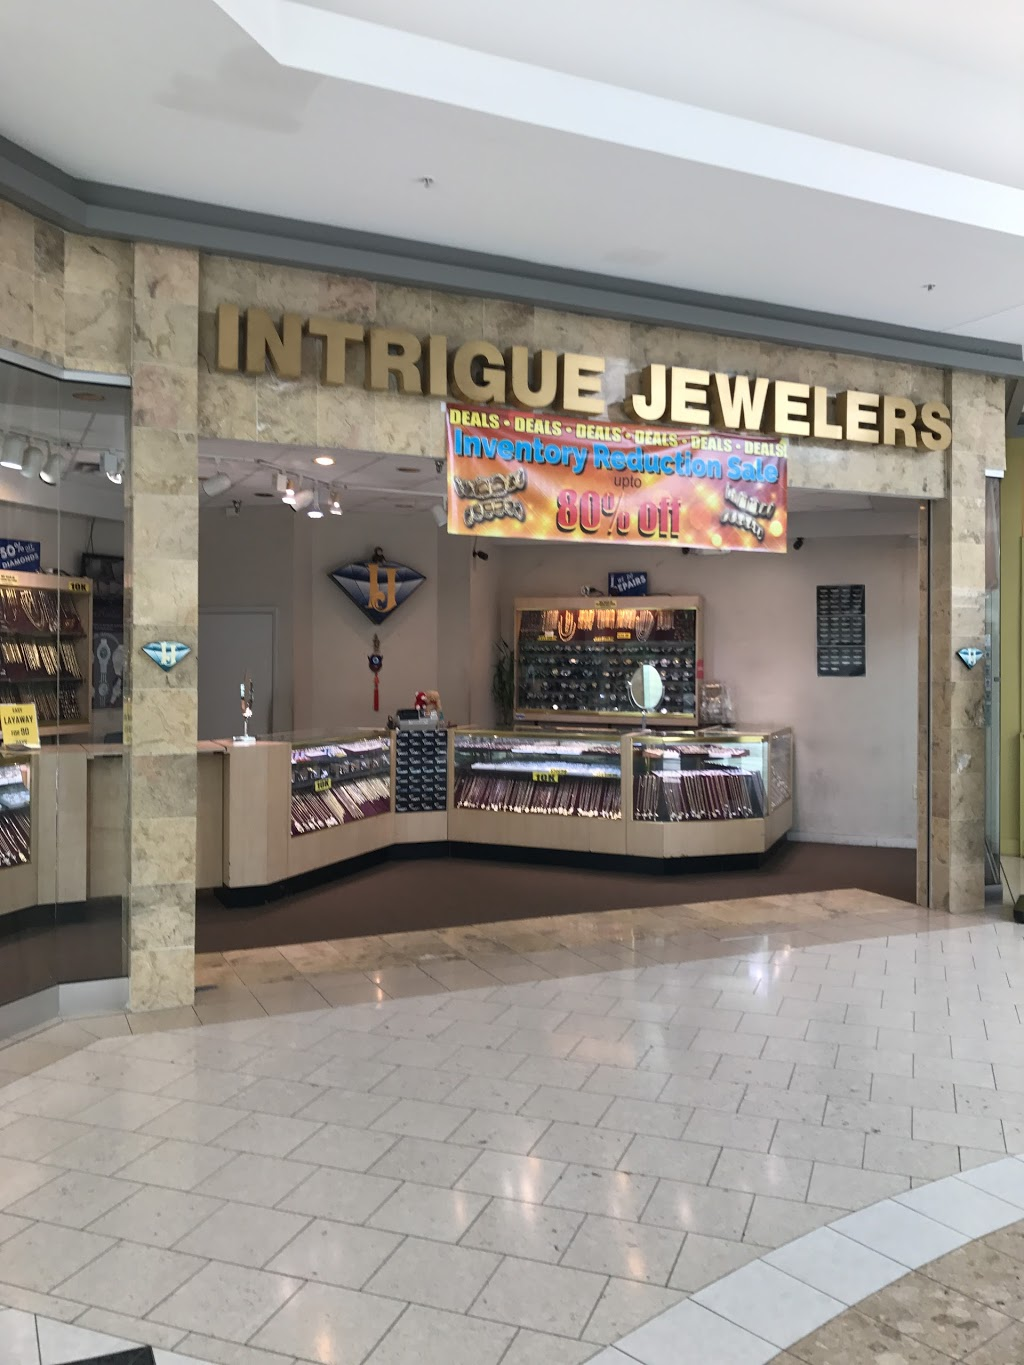 Intrigue Jewelers - jewelry store  | Photo 1 of 1 | Address: 880 N Military Hwy # 1184, Norfolk, VA 23502, USA | Phone: (757) 466-0044